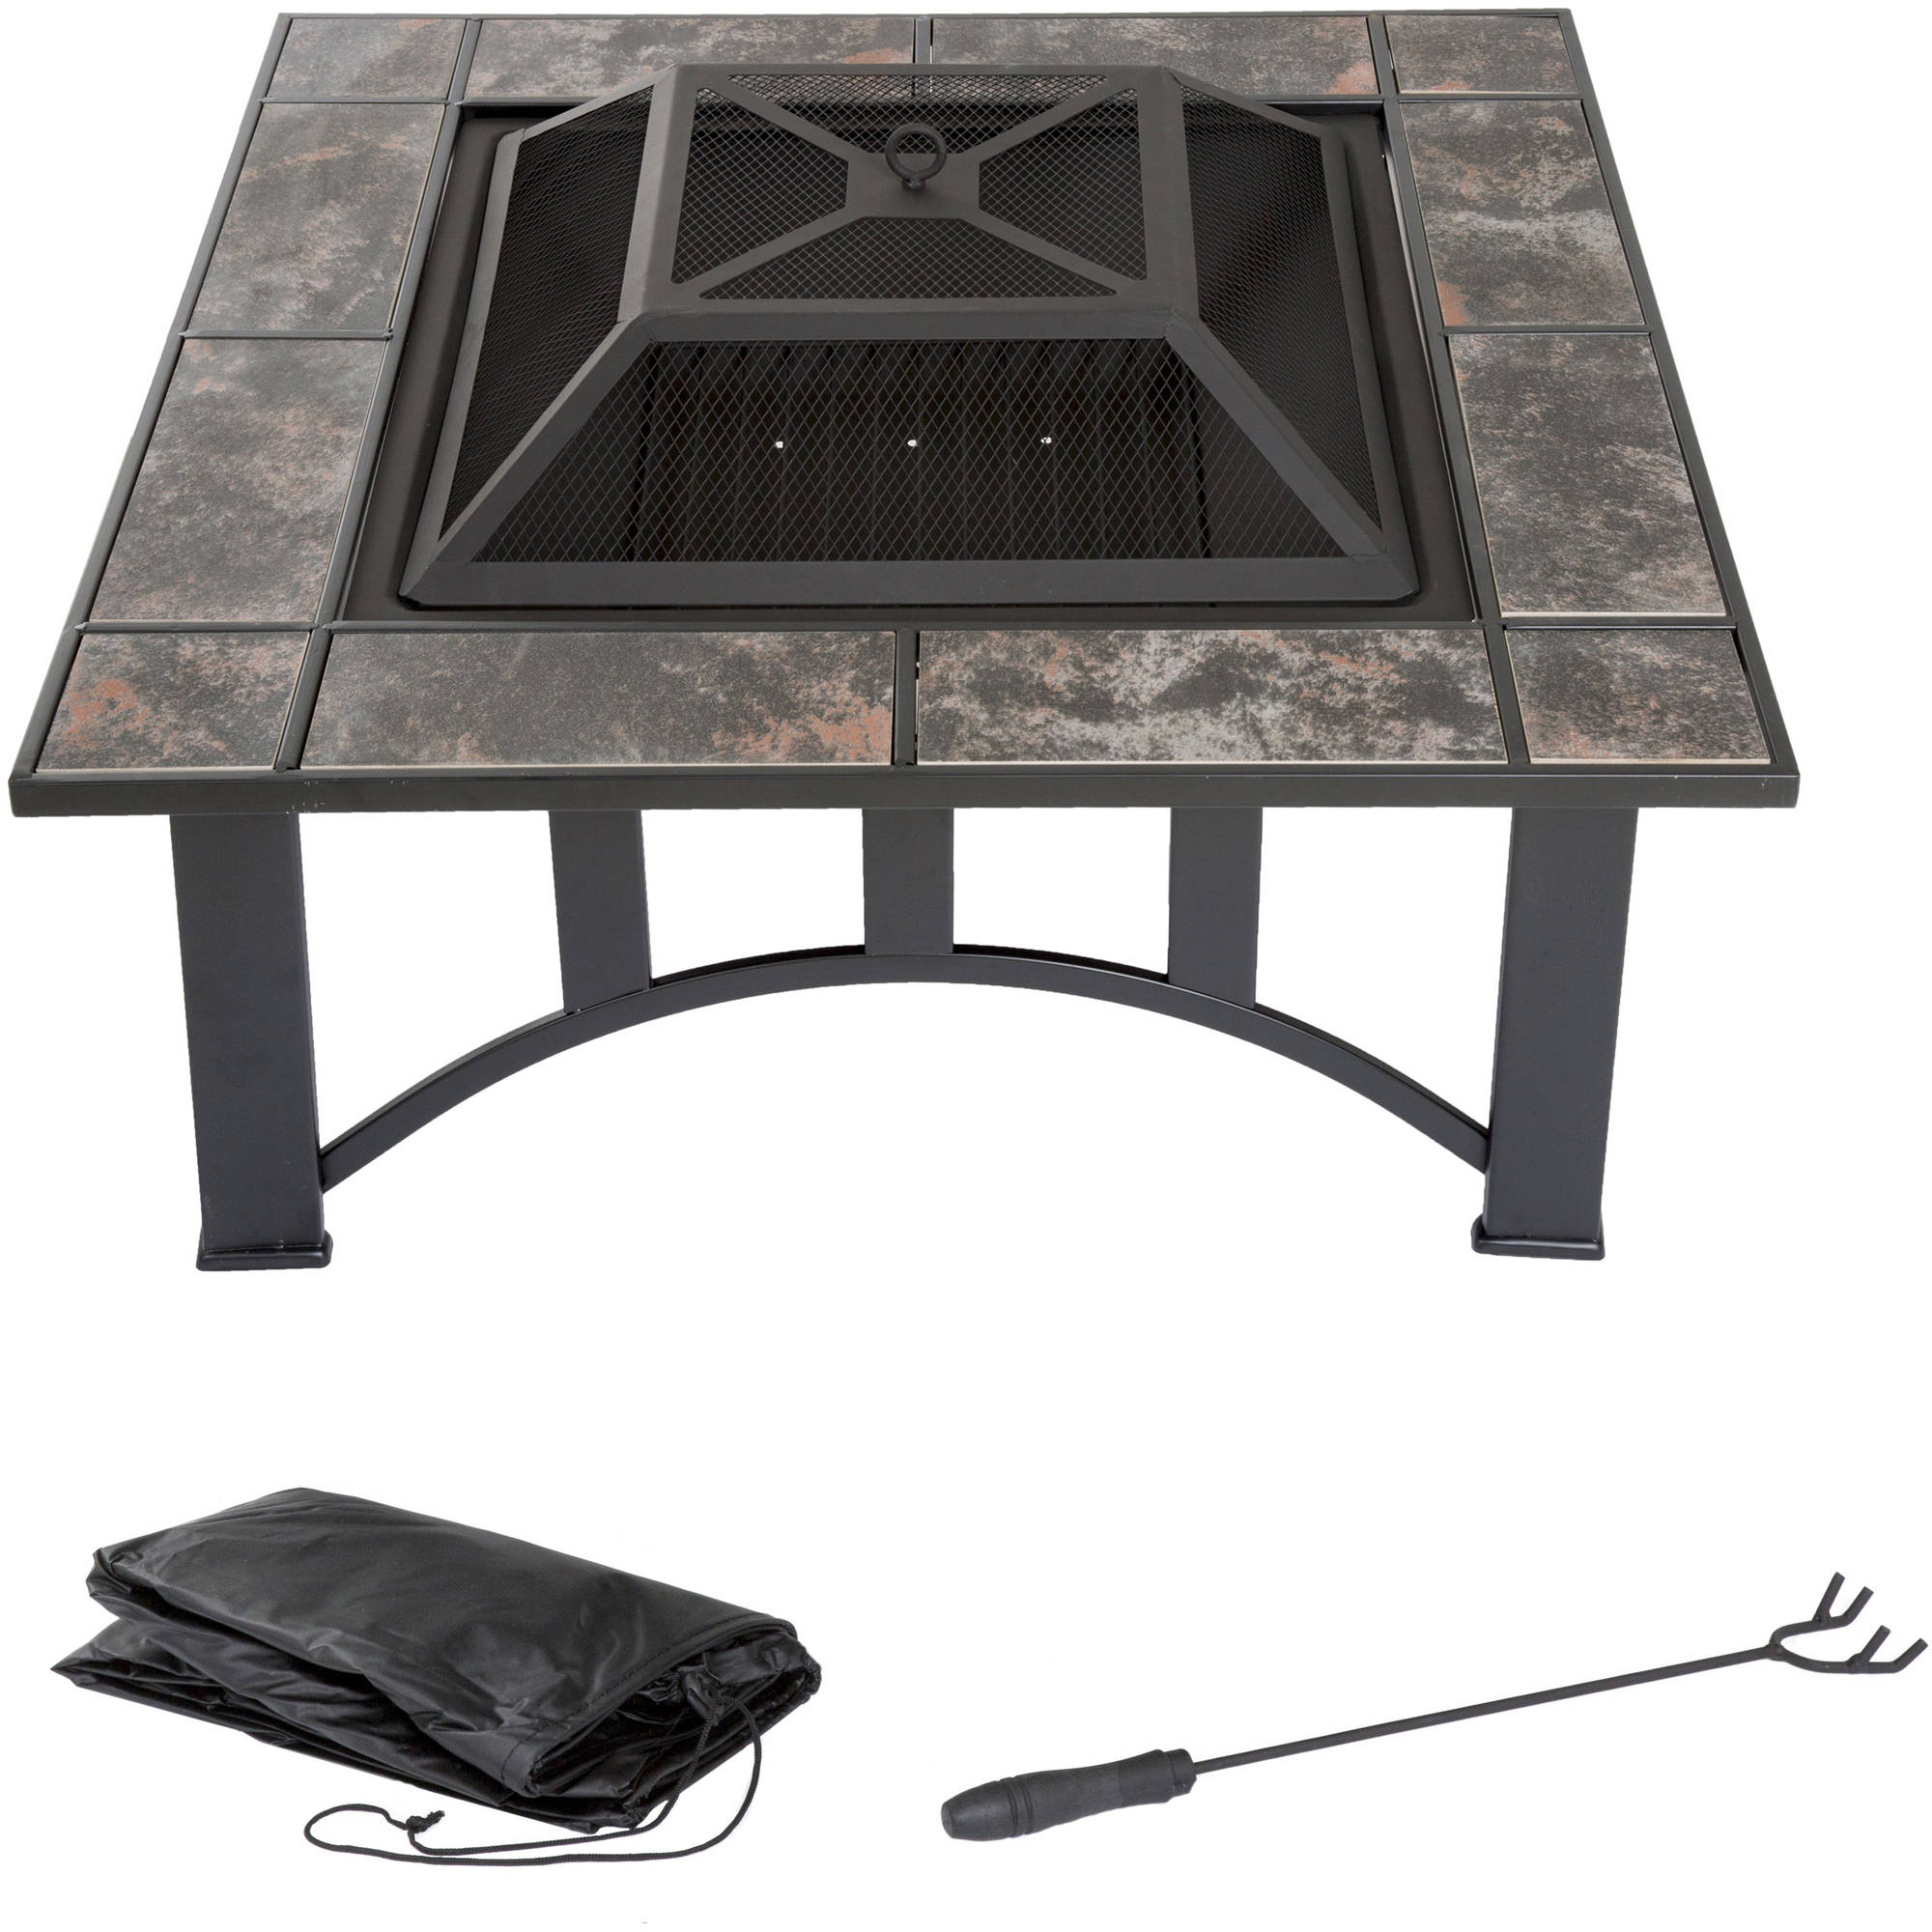 fire pit set wood burning pit includes screen cover and log poker great for outdoor and patio 33 inch square marble tile firepit by pure garden